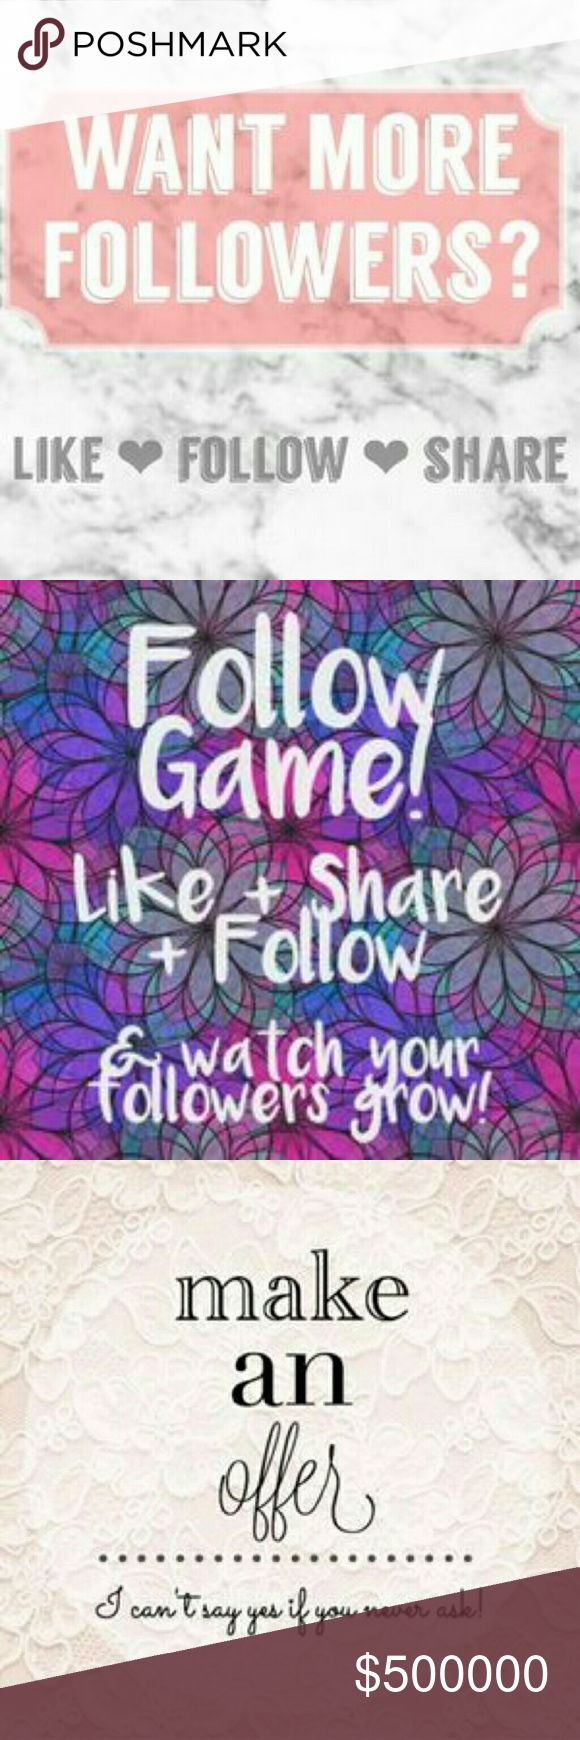 ☆ Follow Game #2 ! Hey pffs come play Follow game #2! Let's grow our closets together!!!   New goal of 15k followers!   ? LIKE ? FOLLOW ? SHARE   Don't forget to come back and follow new likers! Tops